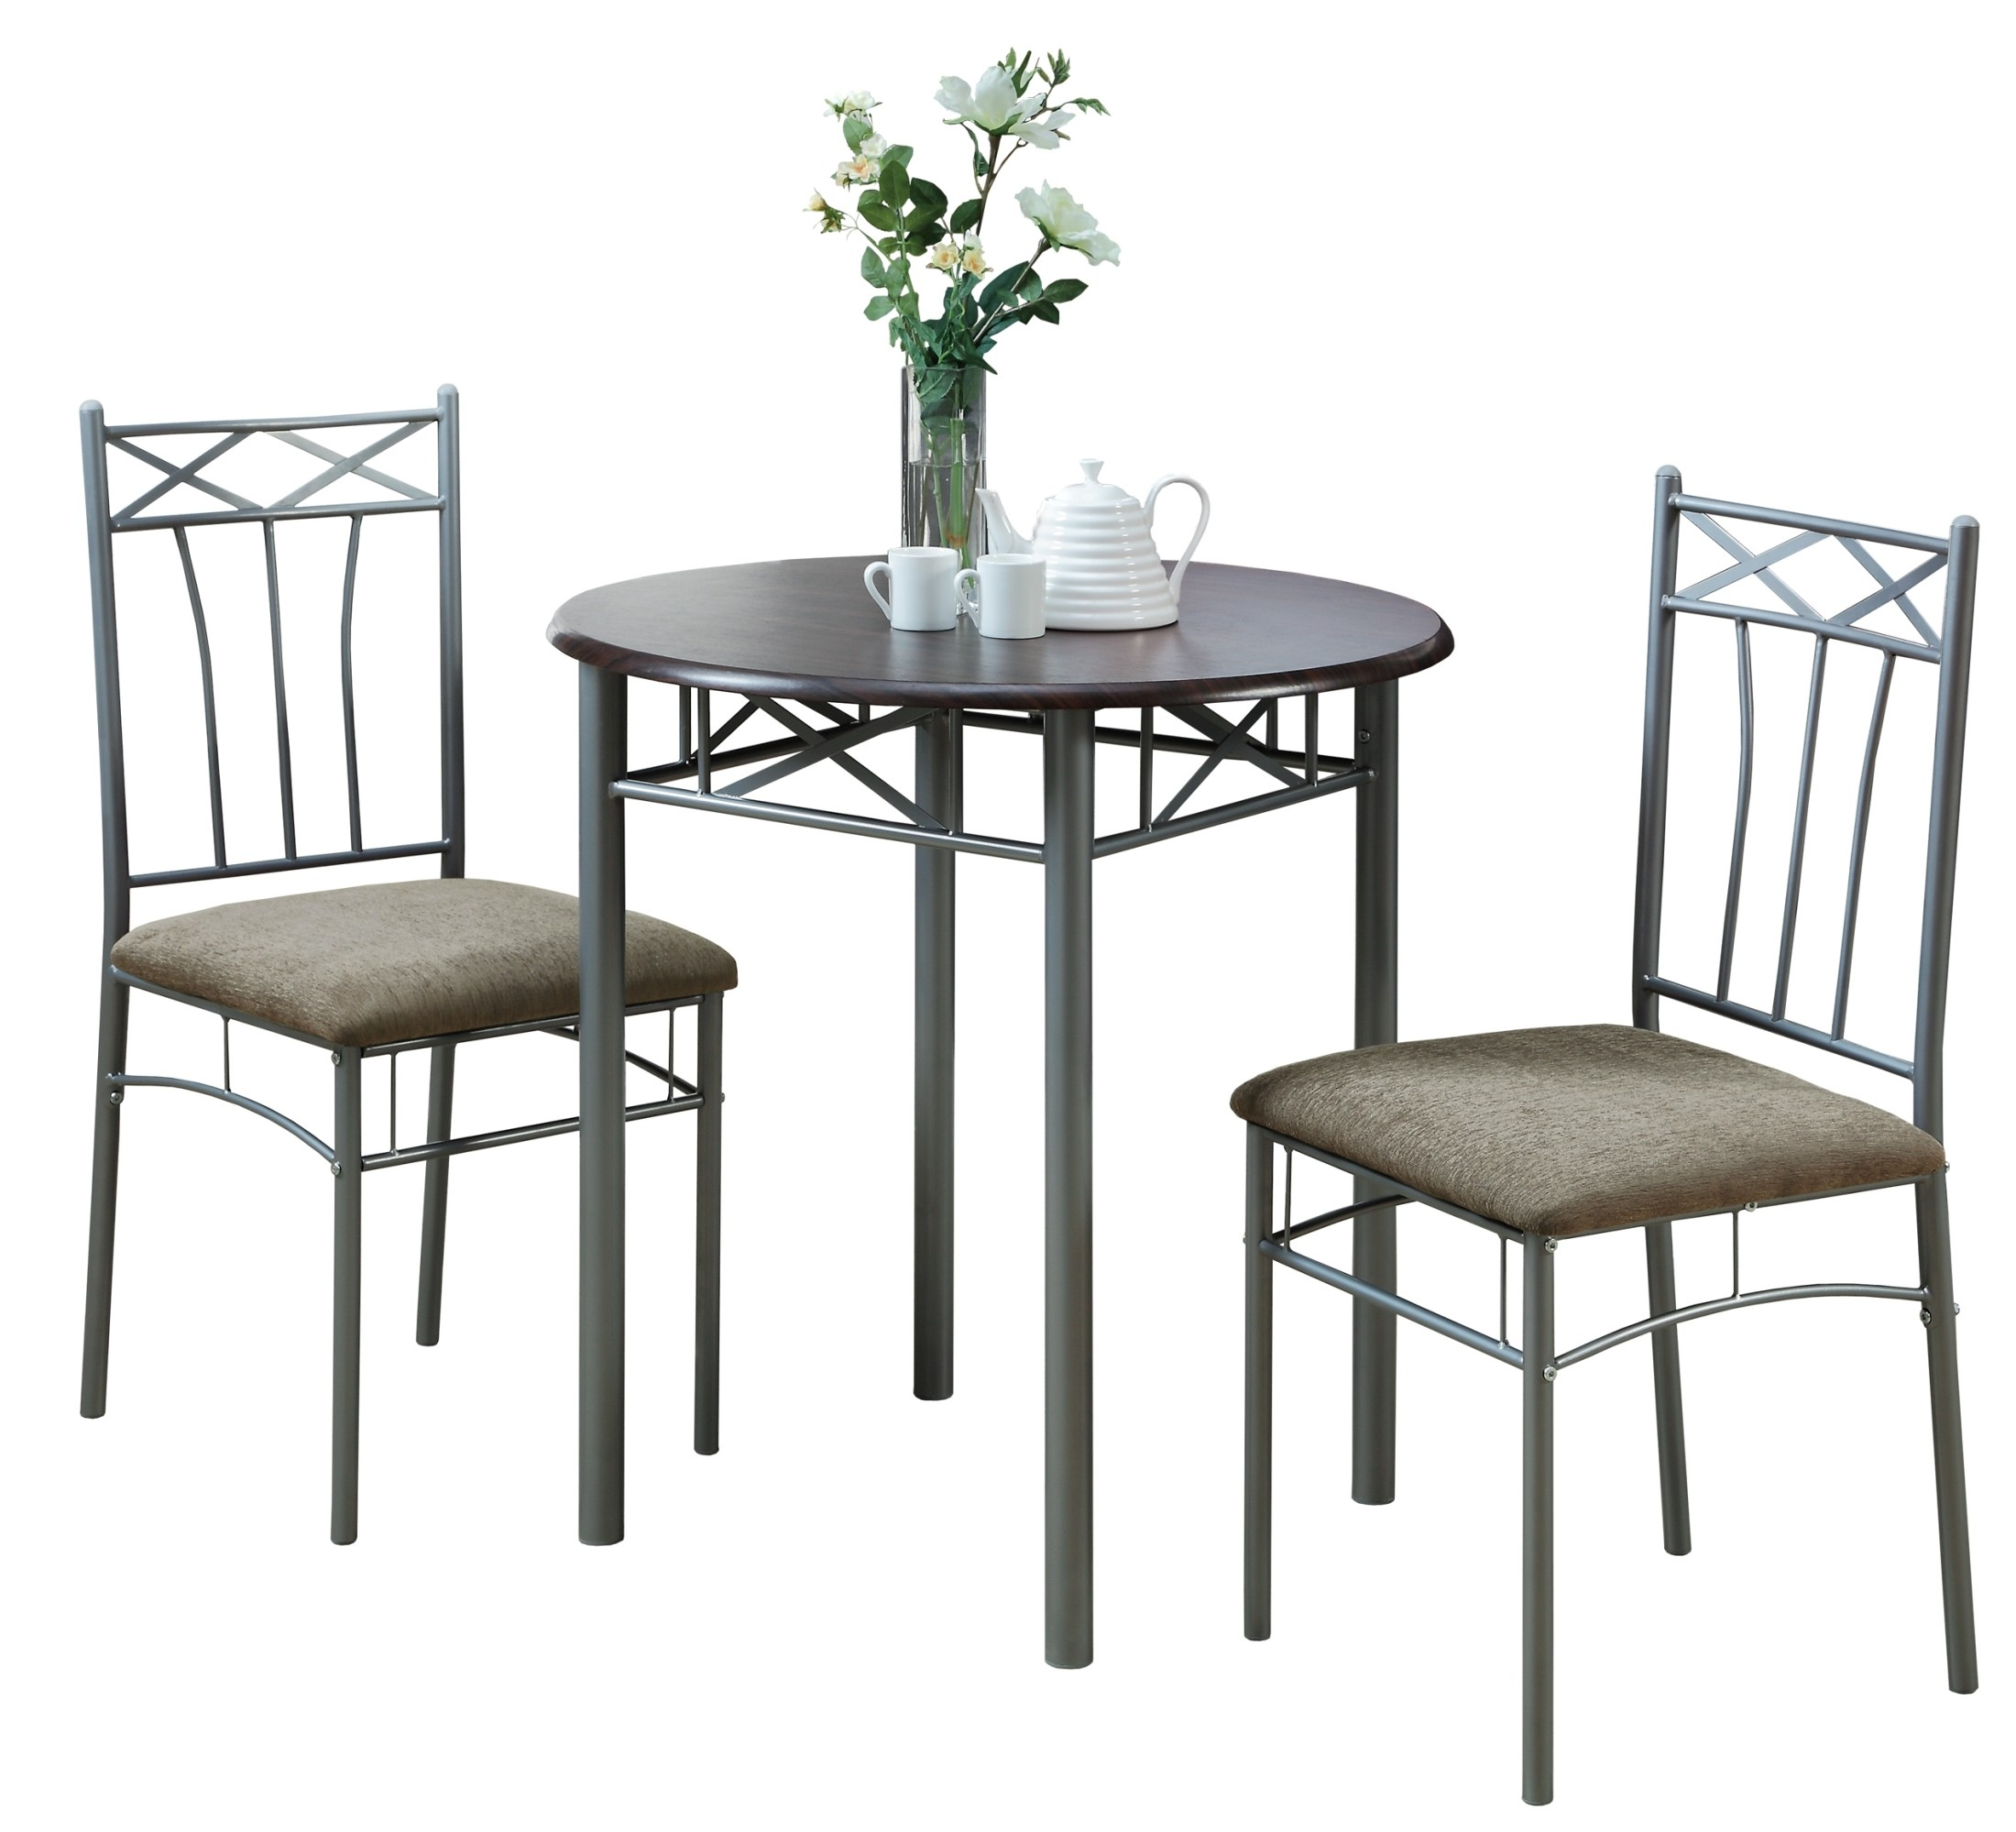 3075 cappuccino silver metal 3pcs bistro set from monarch i 3075 coleman furniture. Black Bedroom Furniture Sets. Home Design Ideas